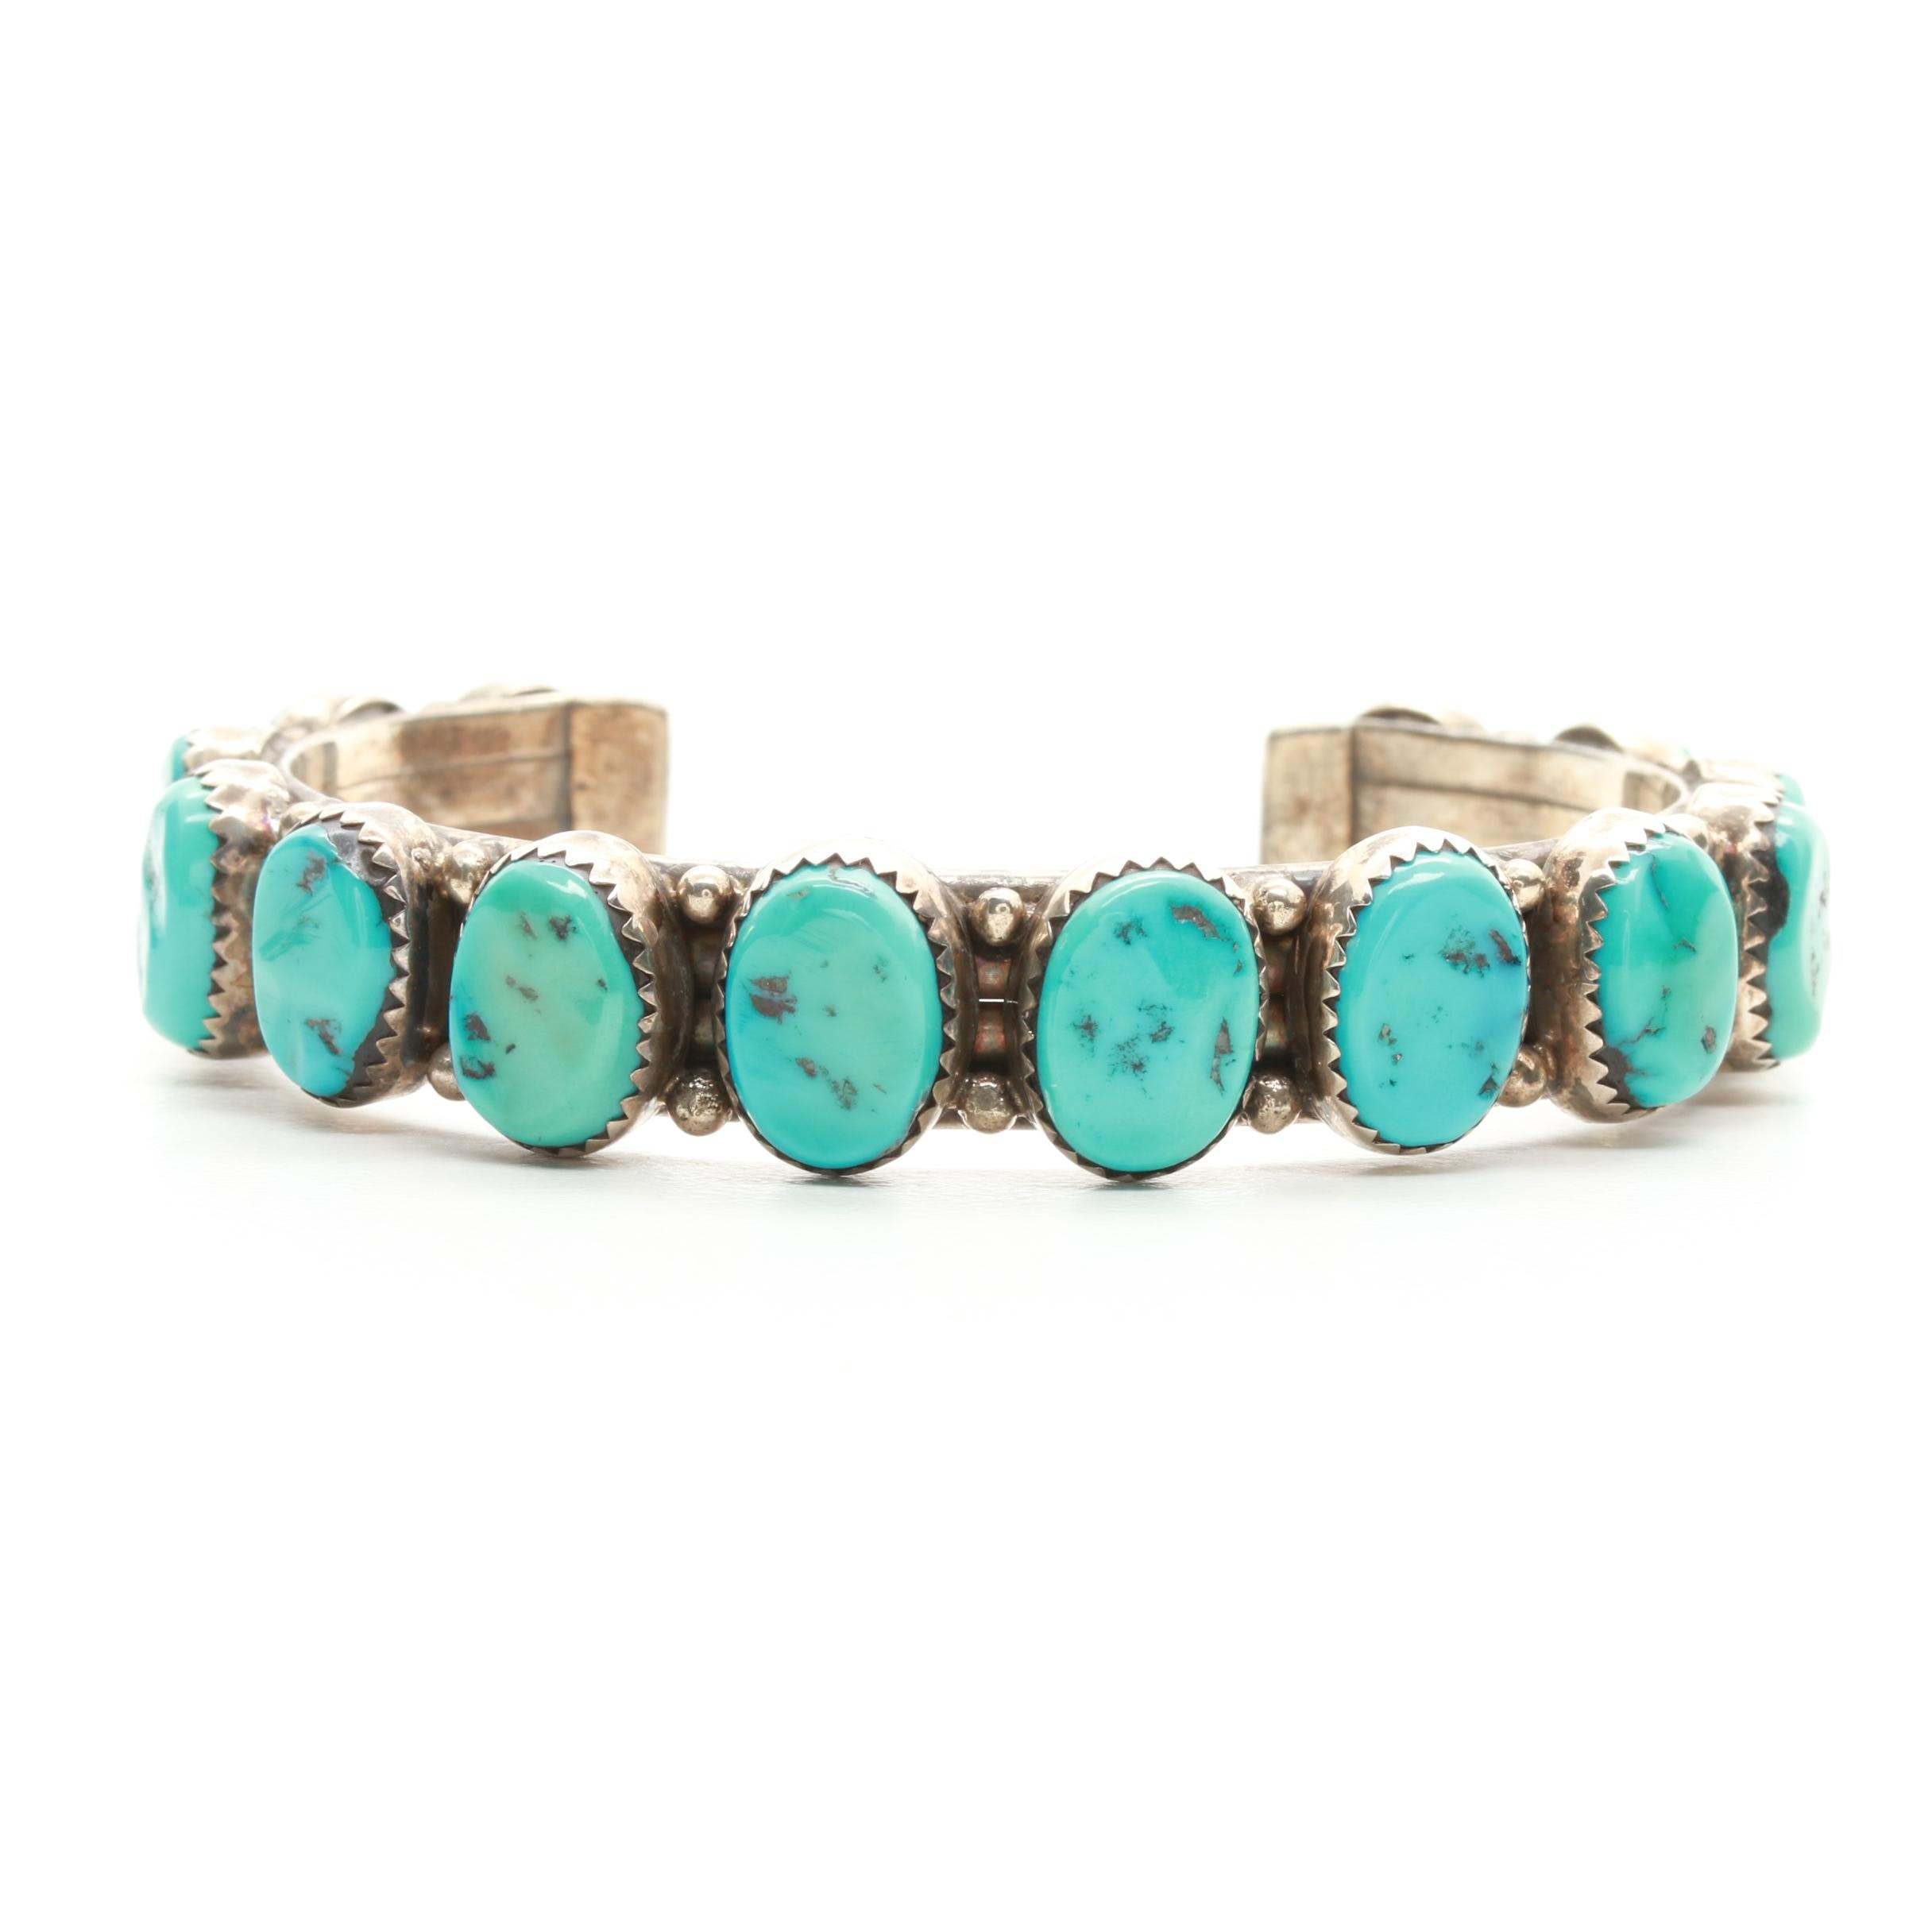 Southwestern Style Sterling Silver Stabilized Turquoise Cuff Bracelet